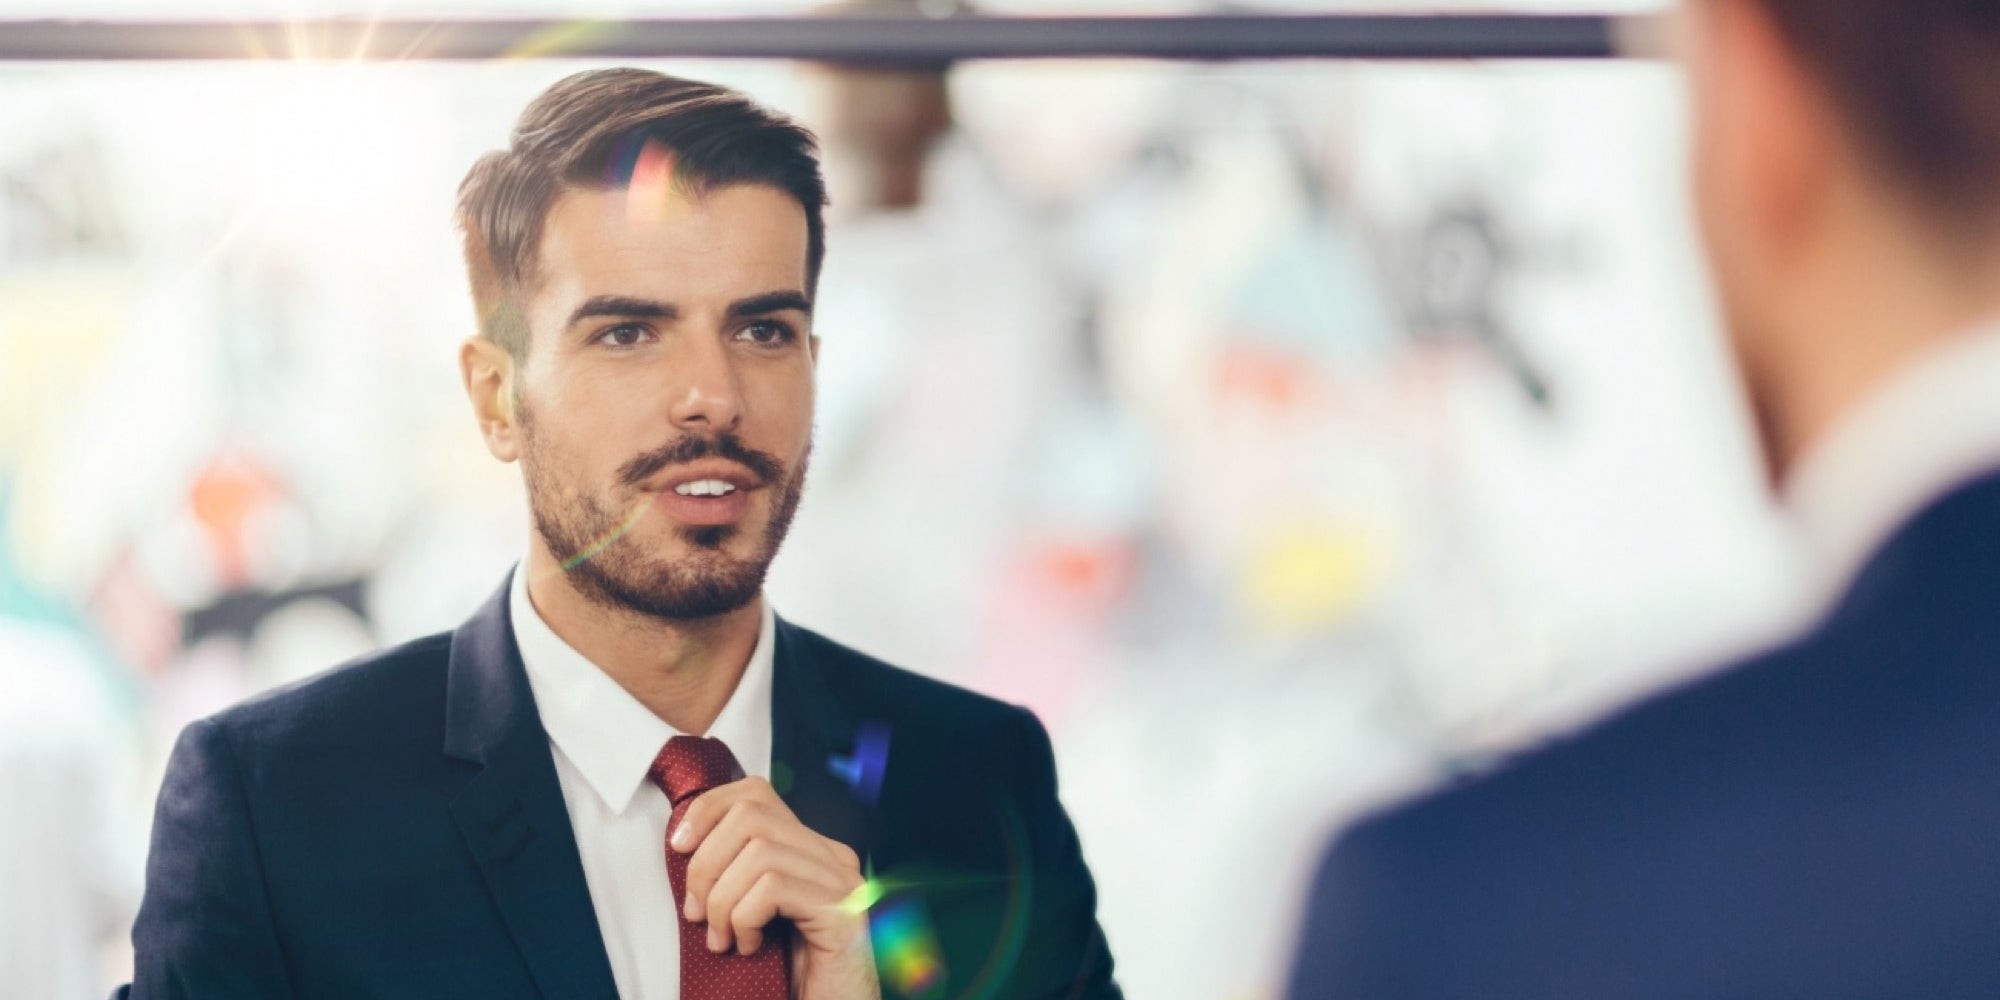 10 Things Successful People Tell Themselves Every Day